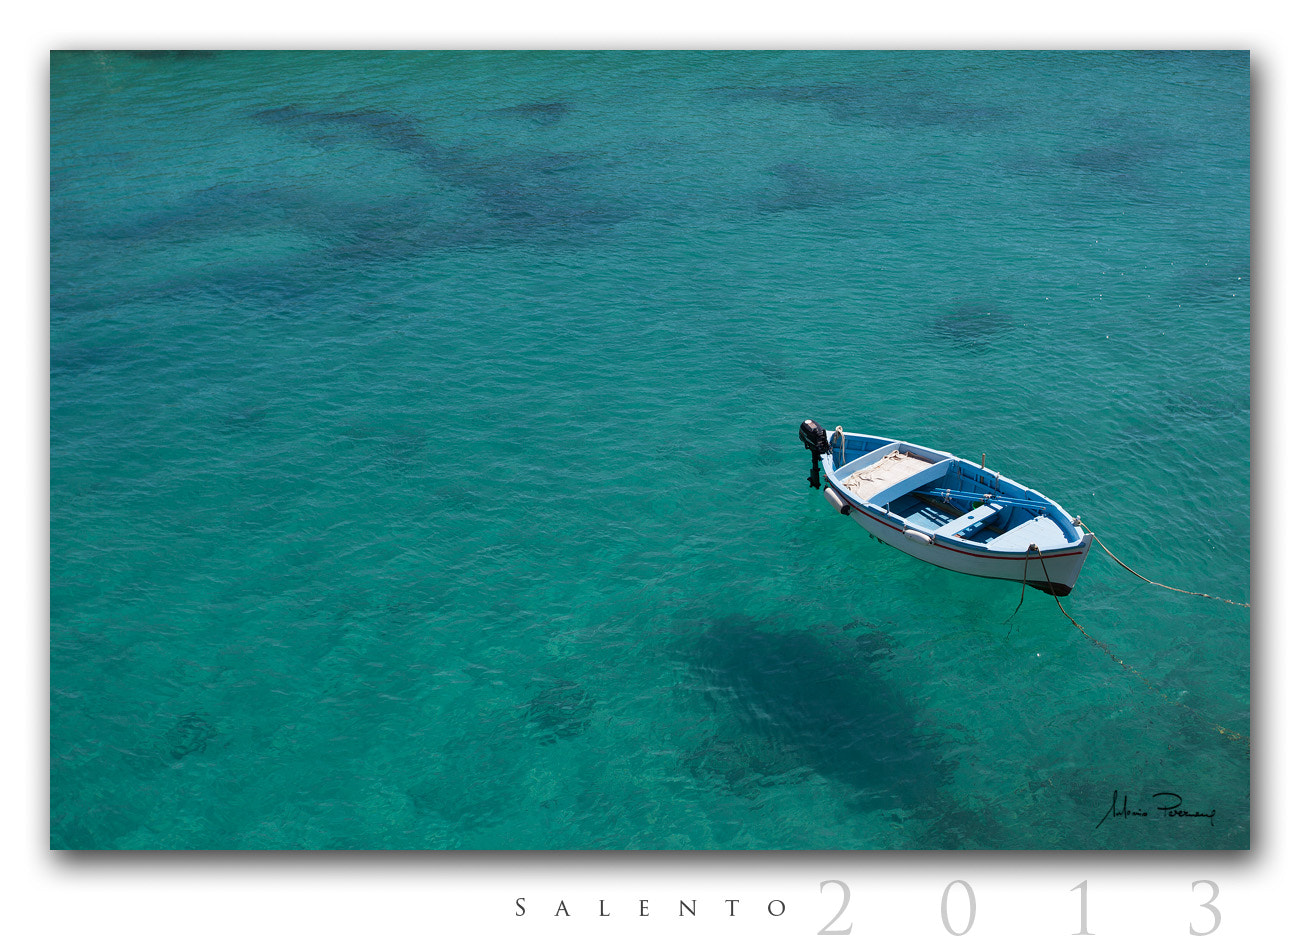 Photograph Salento by Antonio Perrone on 500px